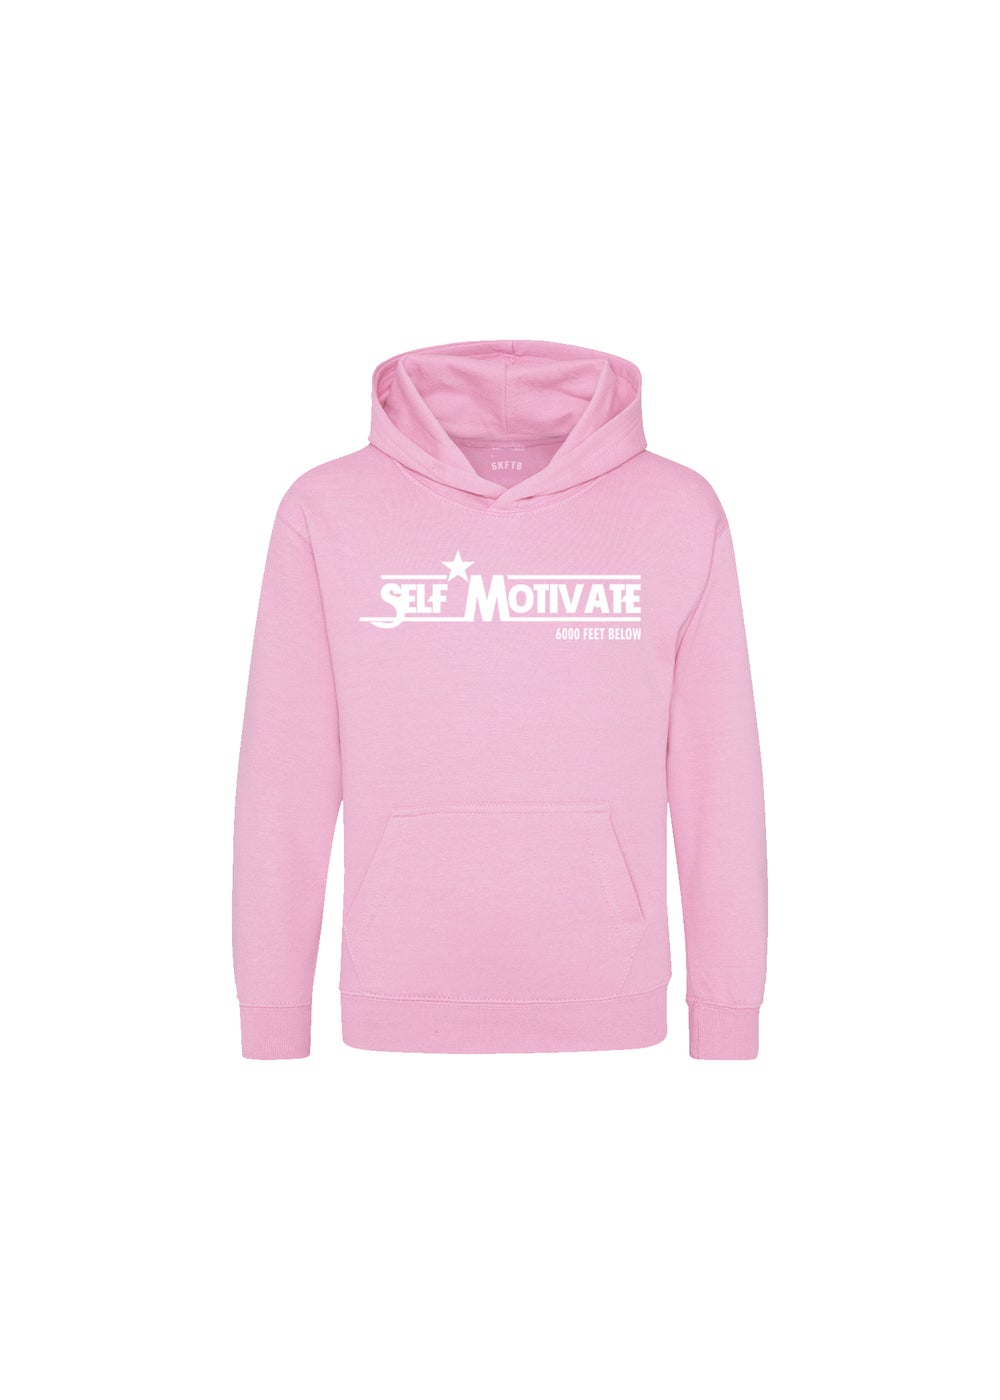 Image of SELF MOTIVATE 6KFTB HOODIE(lights)